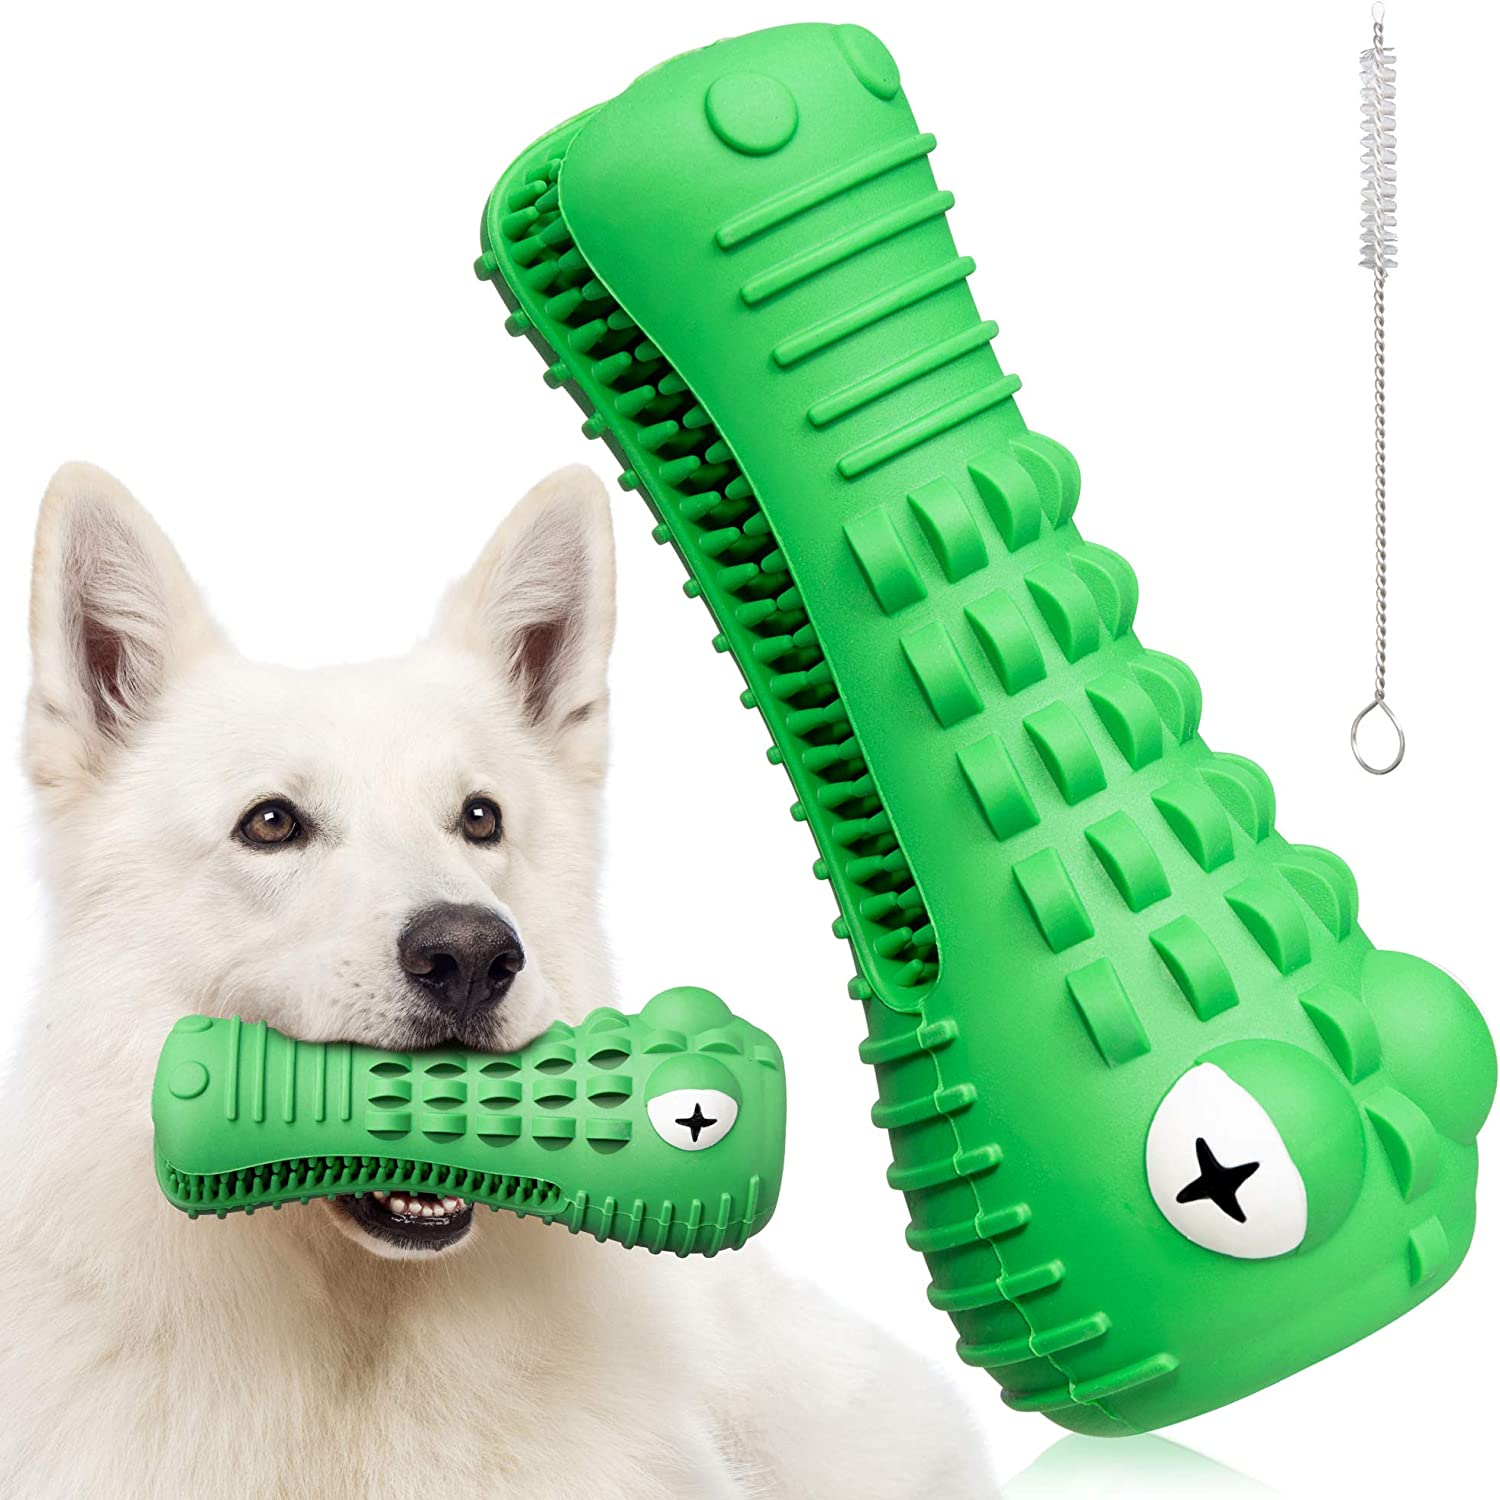 Interactive Fees free!! Dog Chew Toy - Toys Thi Aggressive National products for Chewers